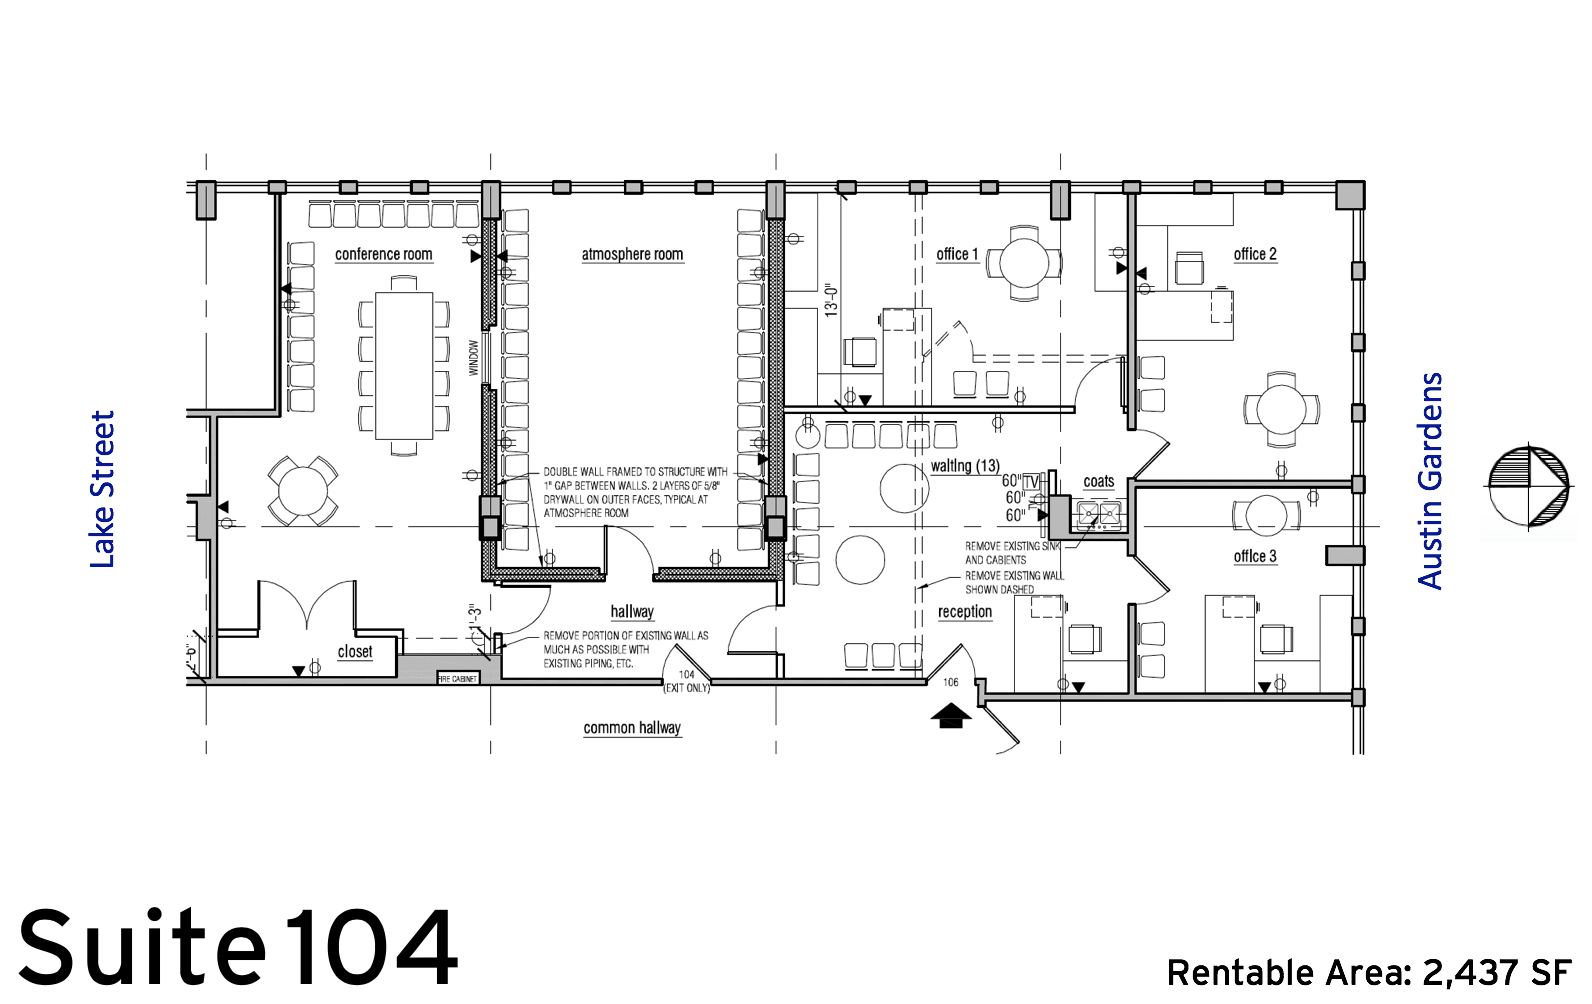 Suite 104 floor plan (2,437 SF) :: Available Oak Park, IL office space rentals: 1010 Lake Street, Oak Park, IL